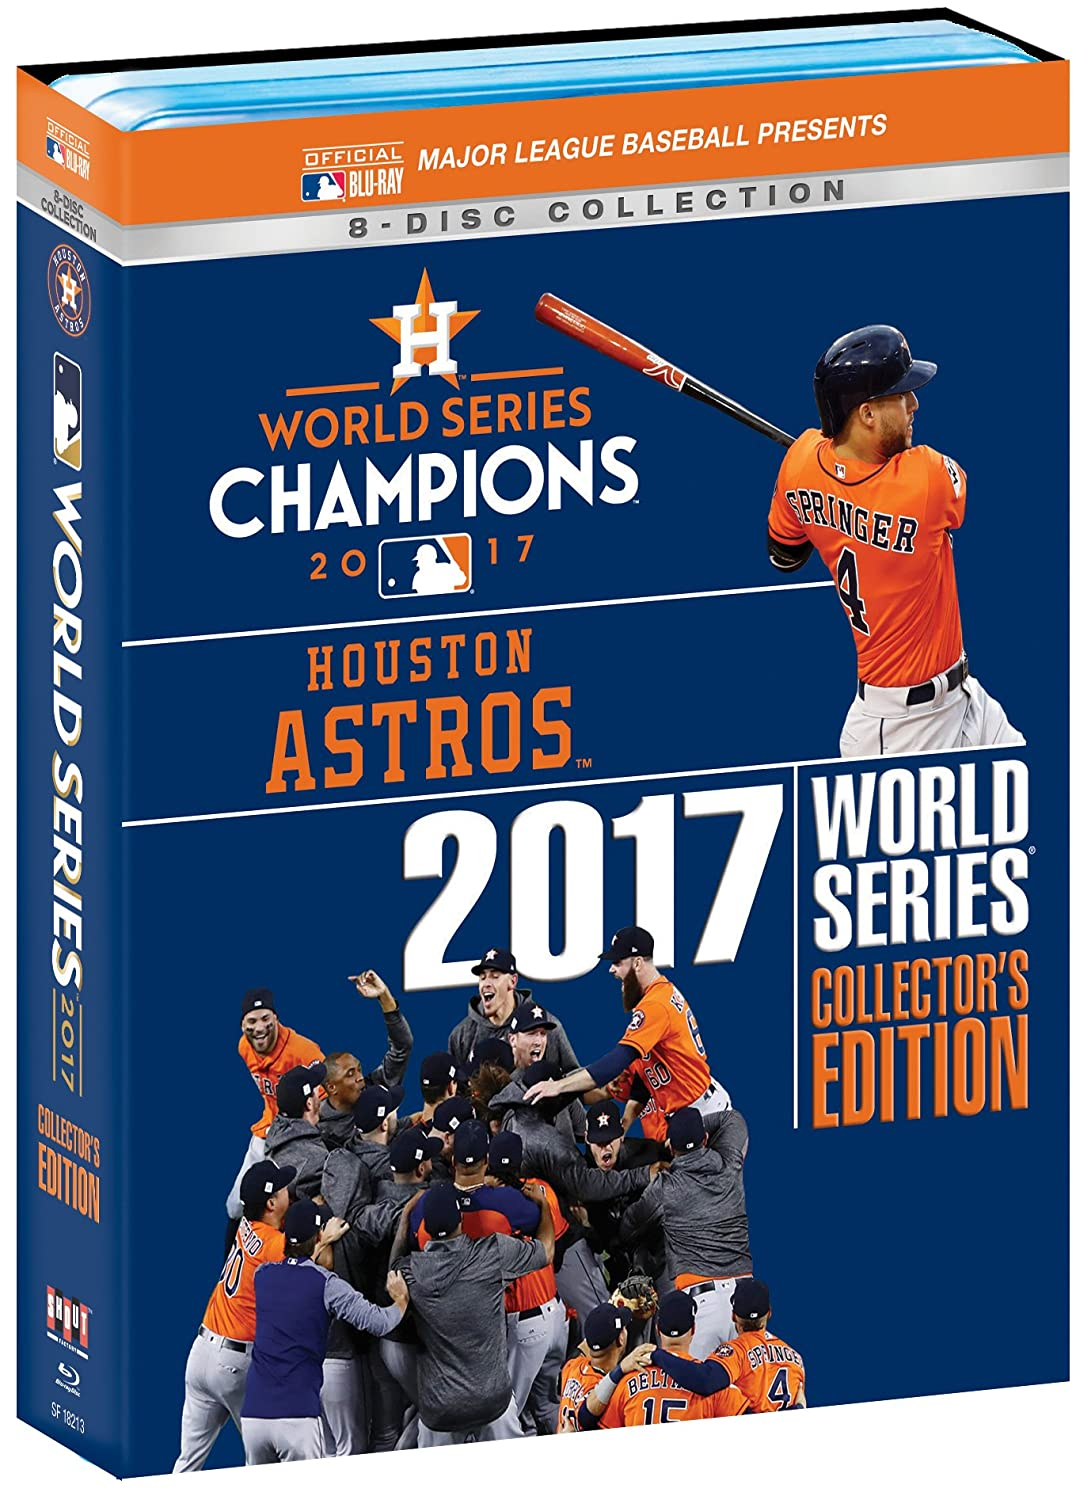 Houston Astros 2017 World Collector's Blu-ray Edition Regular discount Ranking TOP12 Series